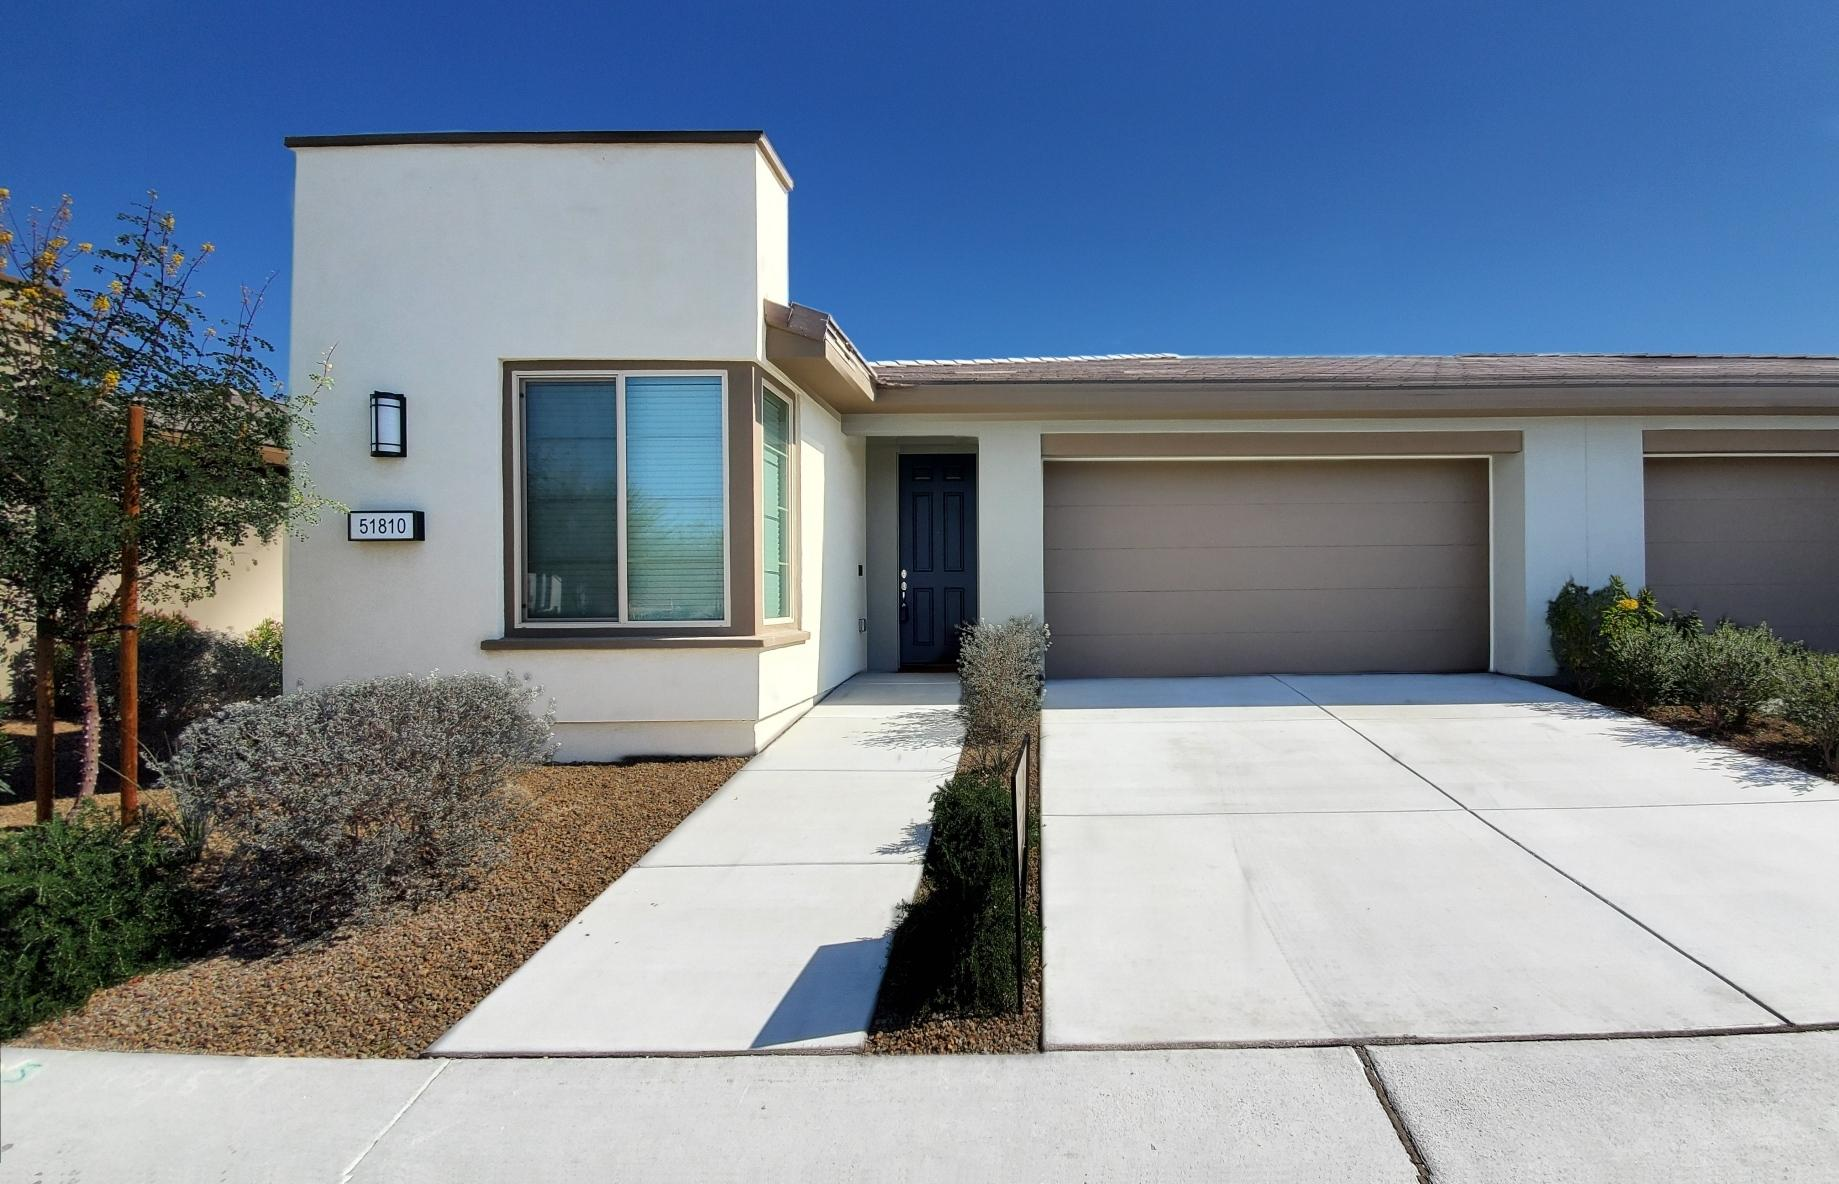 Photo of 51810 Golden Eagle, Indio, CA 92201